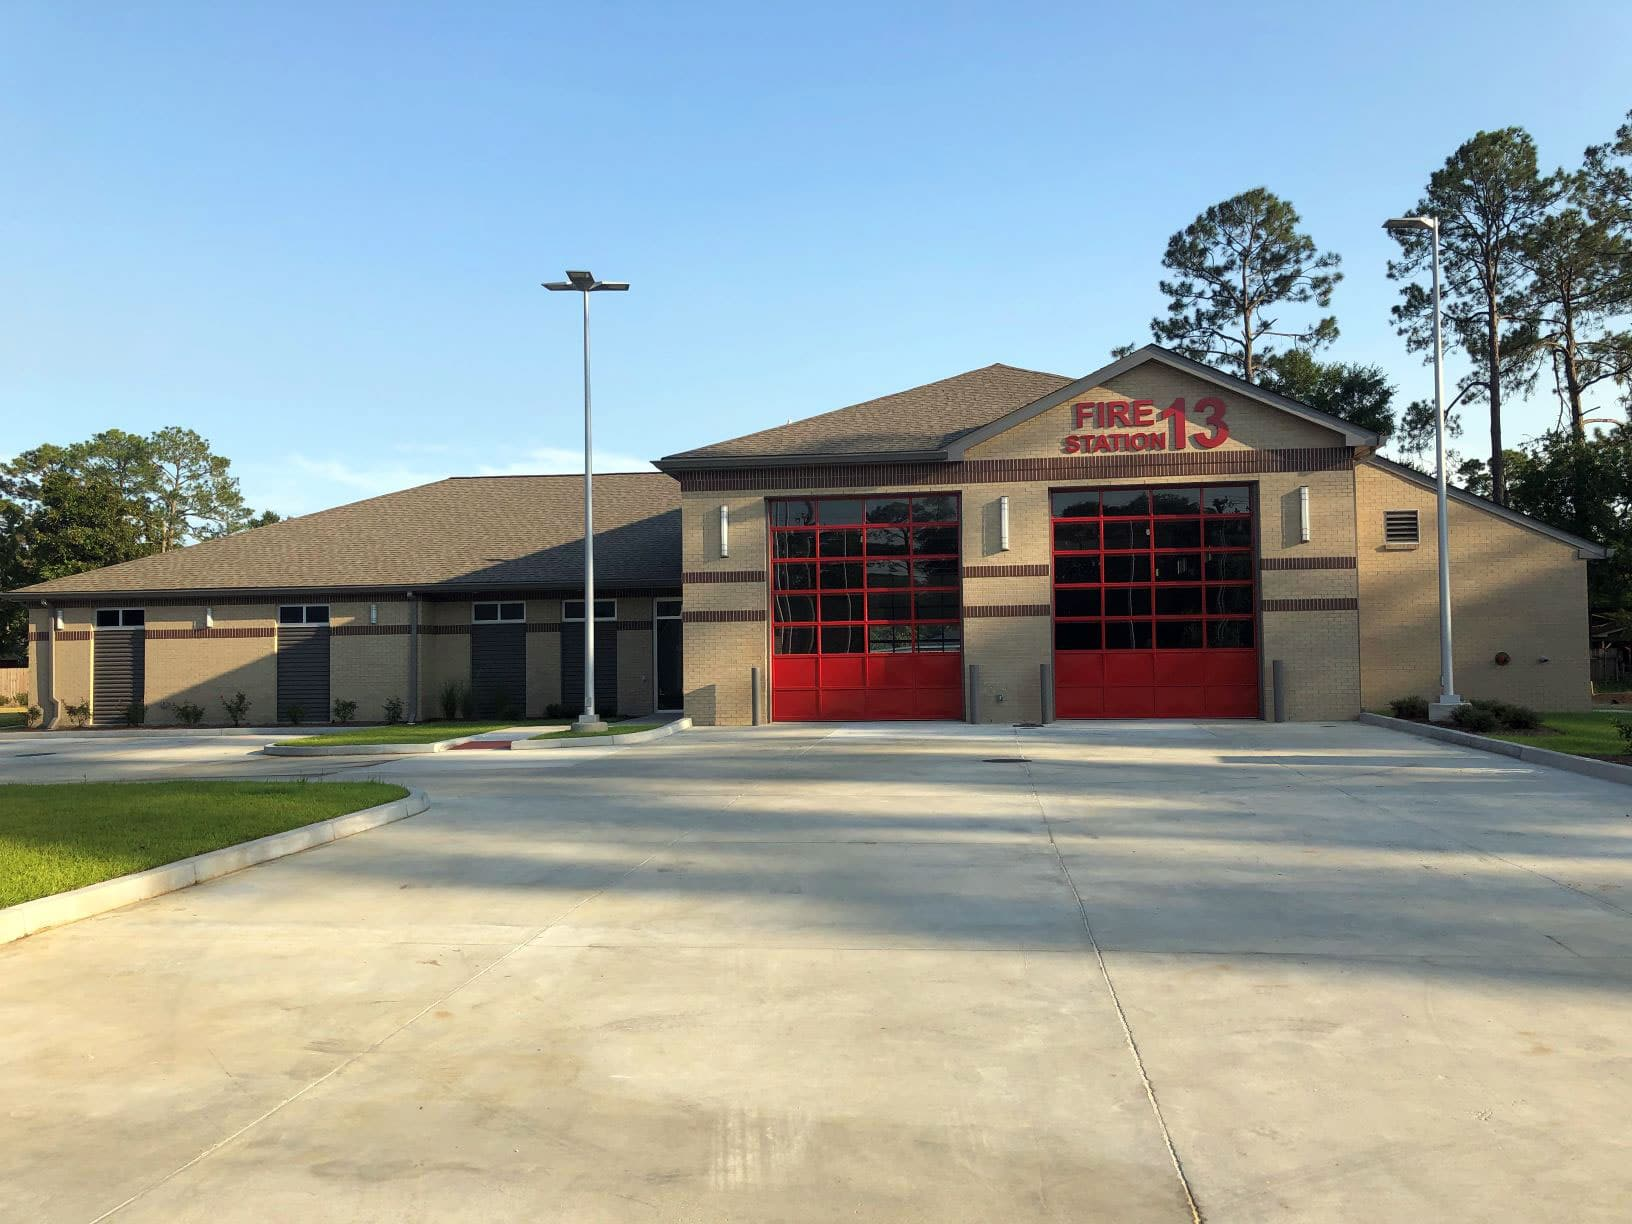 VERTEX Surety Claims, St Tammany Parish Fire Station, 53206